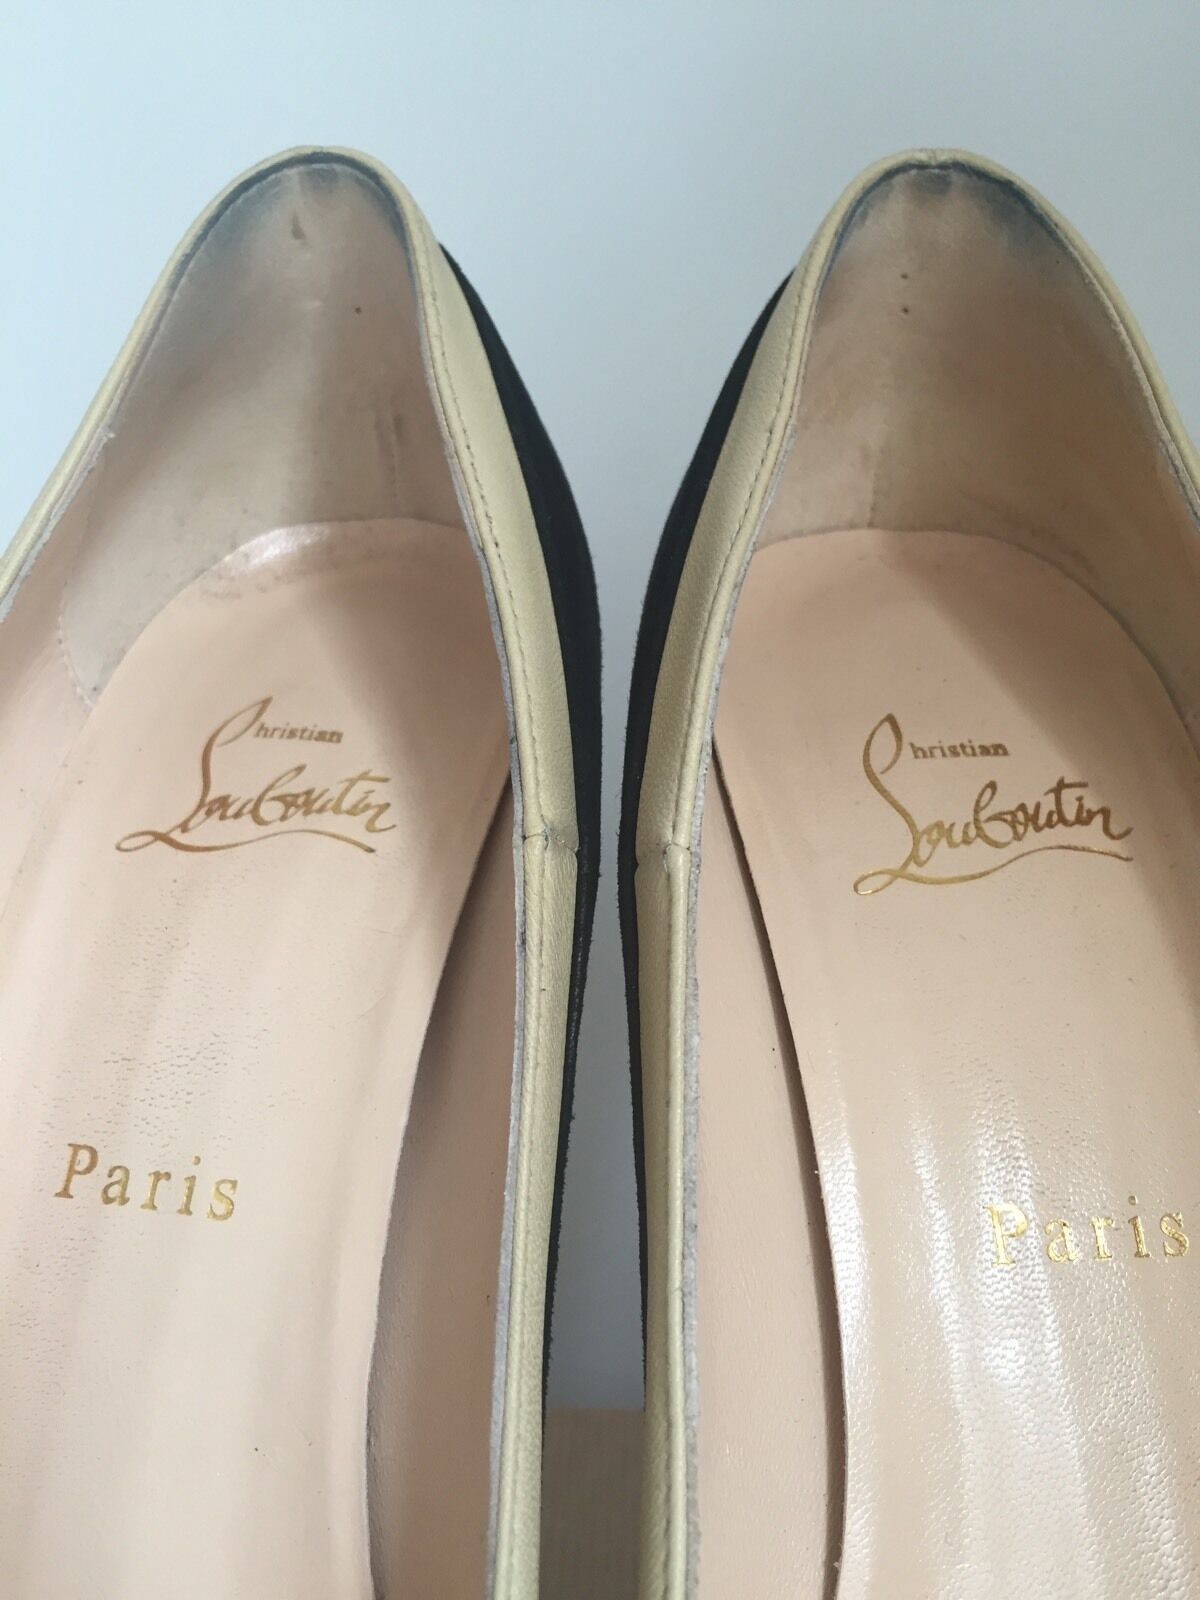 Christian Christian Christian Louboutin  Mago  Suede Nappa Patent Größe 38.5 Gorgeous, Authentic 15be89